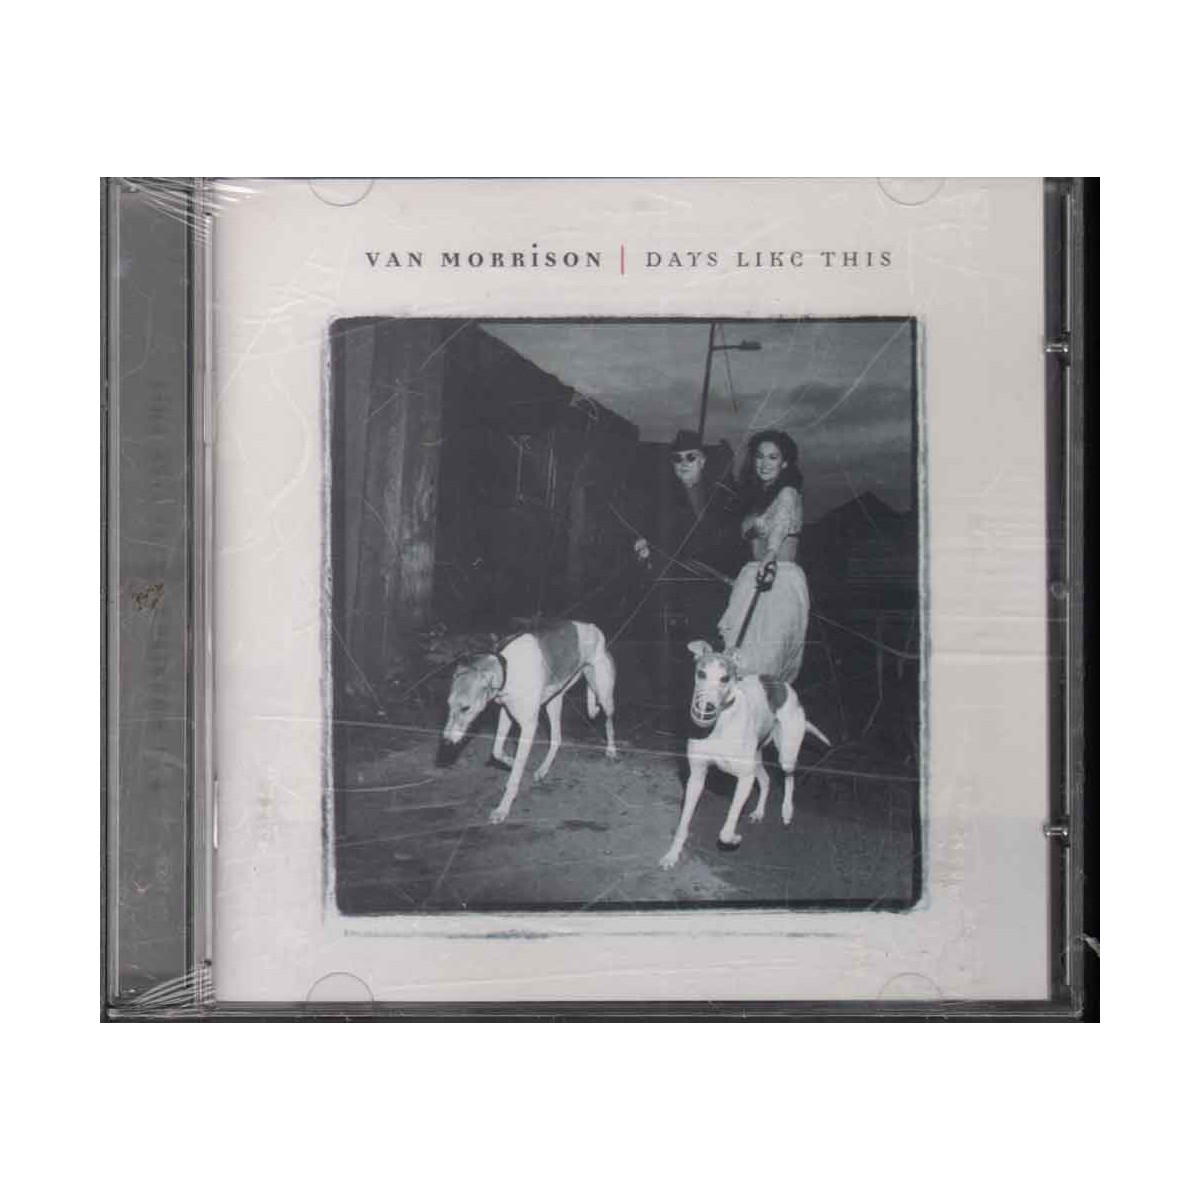 Van Morrison - Days Like This / Polydor ‎527 307-2 / 0731452730725